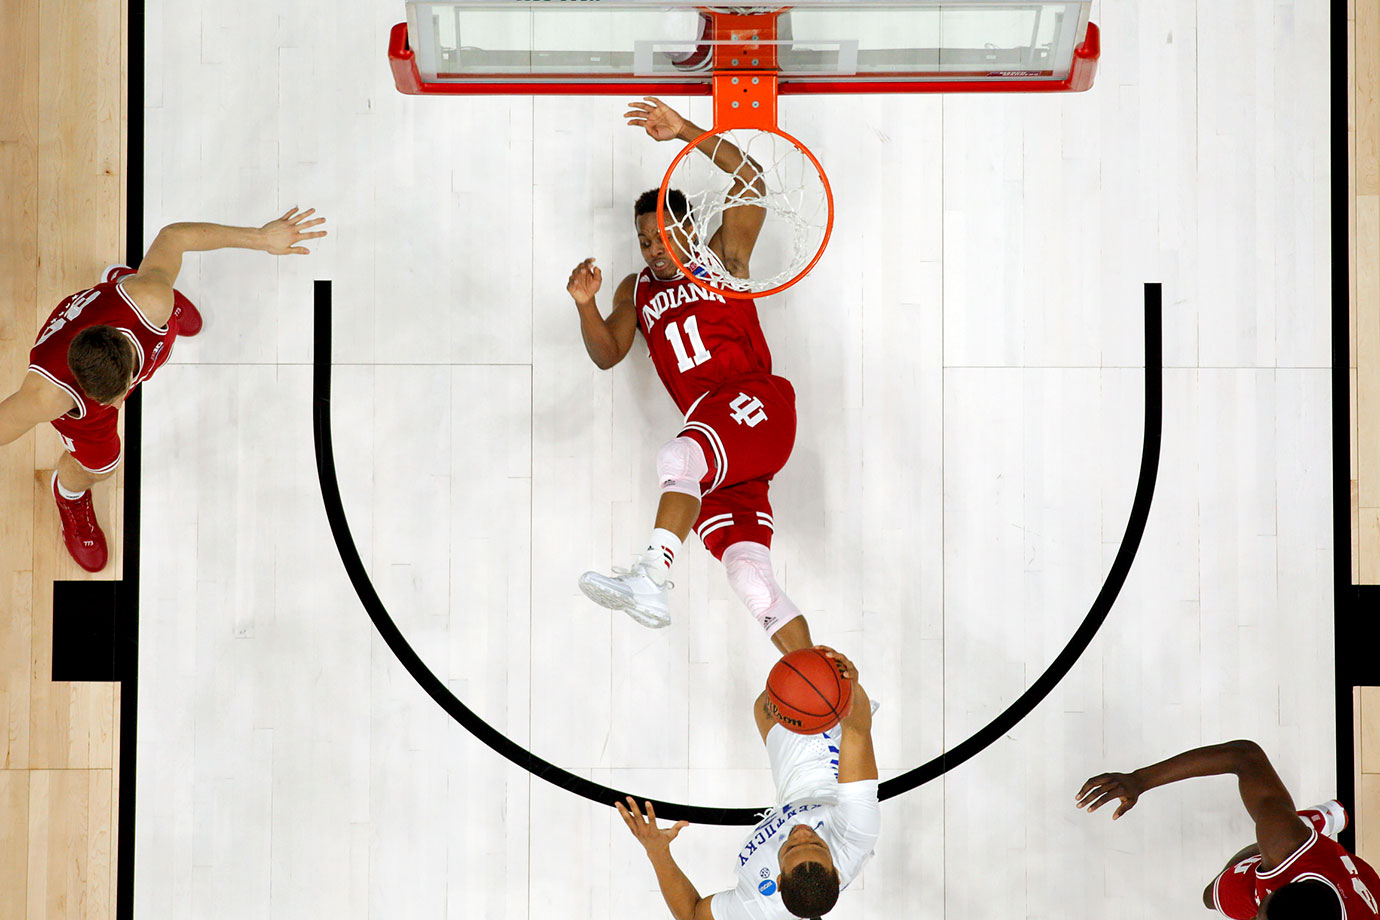 The last trait a team wants to bring into a matchup with North Carolina is average interior defense. That is exactly what the Hoosiers have in the paint, ranking 182nd in the country in opponents' two-point percentage. They won't be able to slow down the duo of Brice Johnson and Justin Jackson.